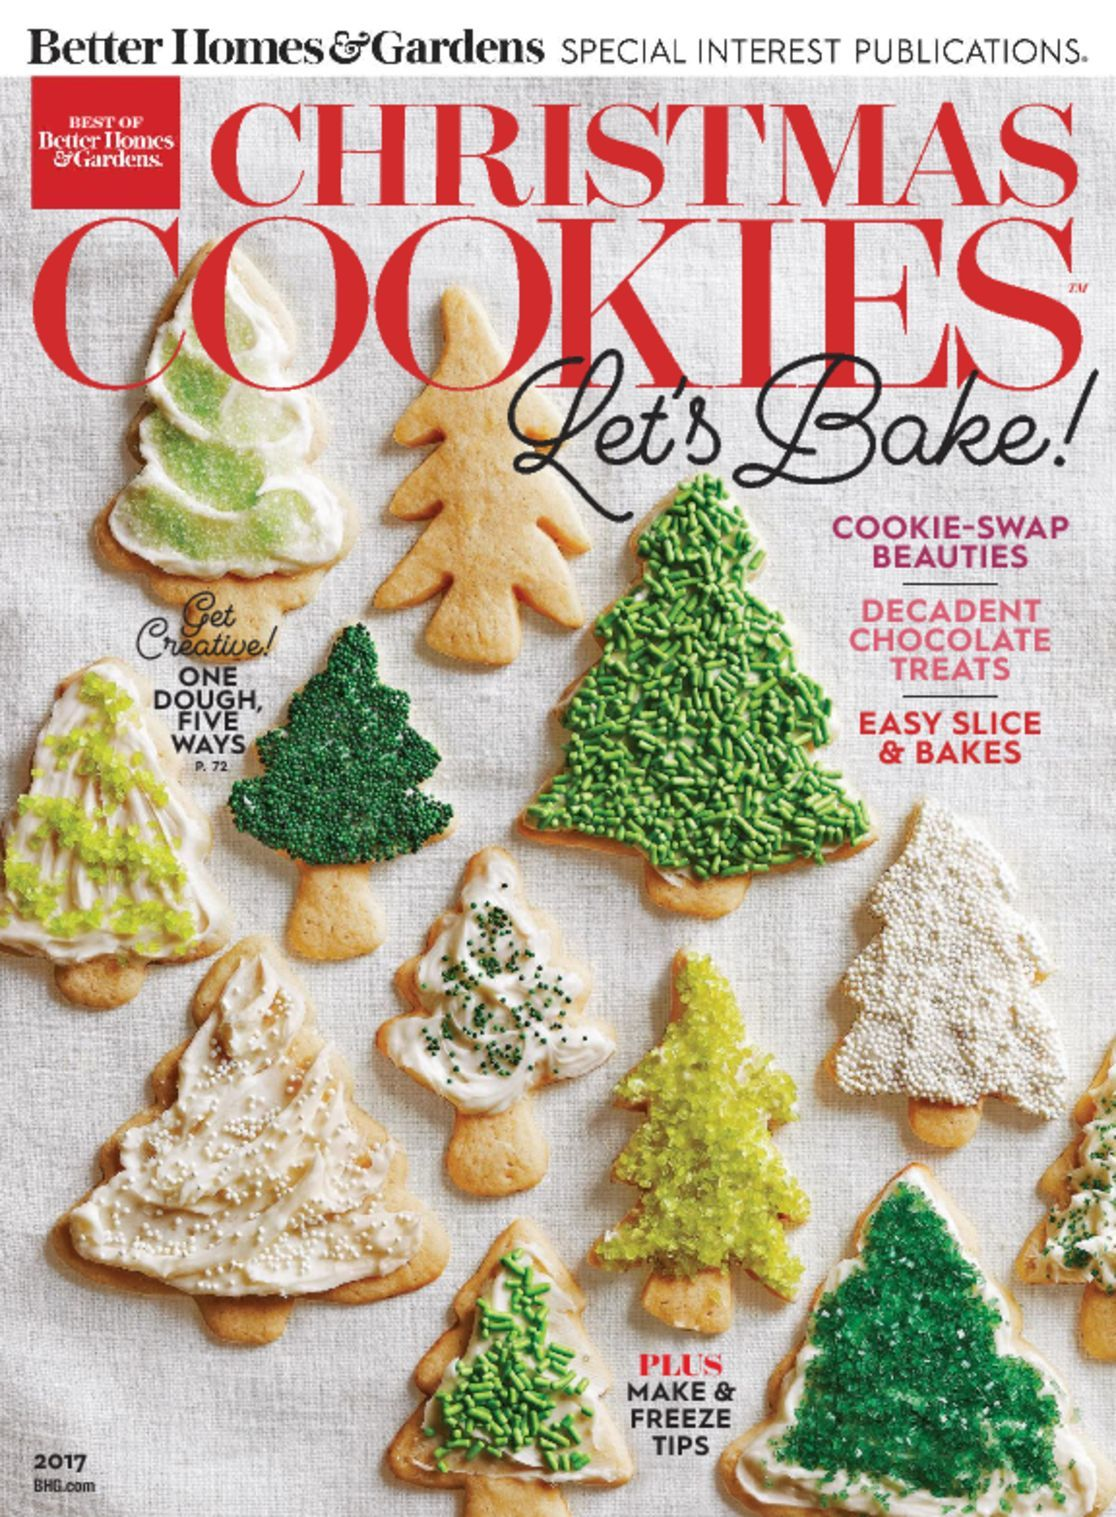 Best of better homes gardens christmas cookies magazine Better homes and gardens christmas special